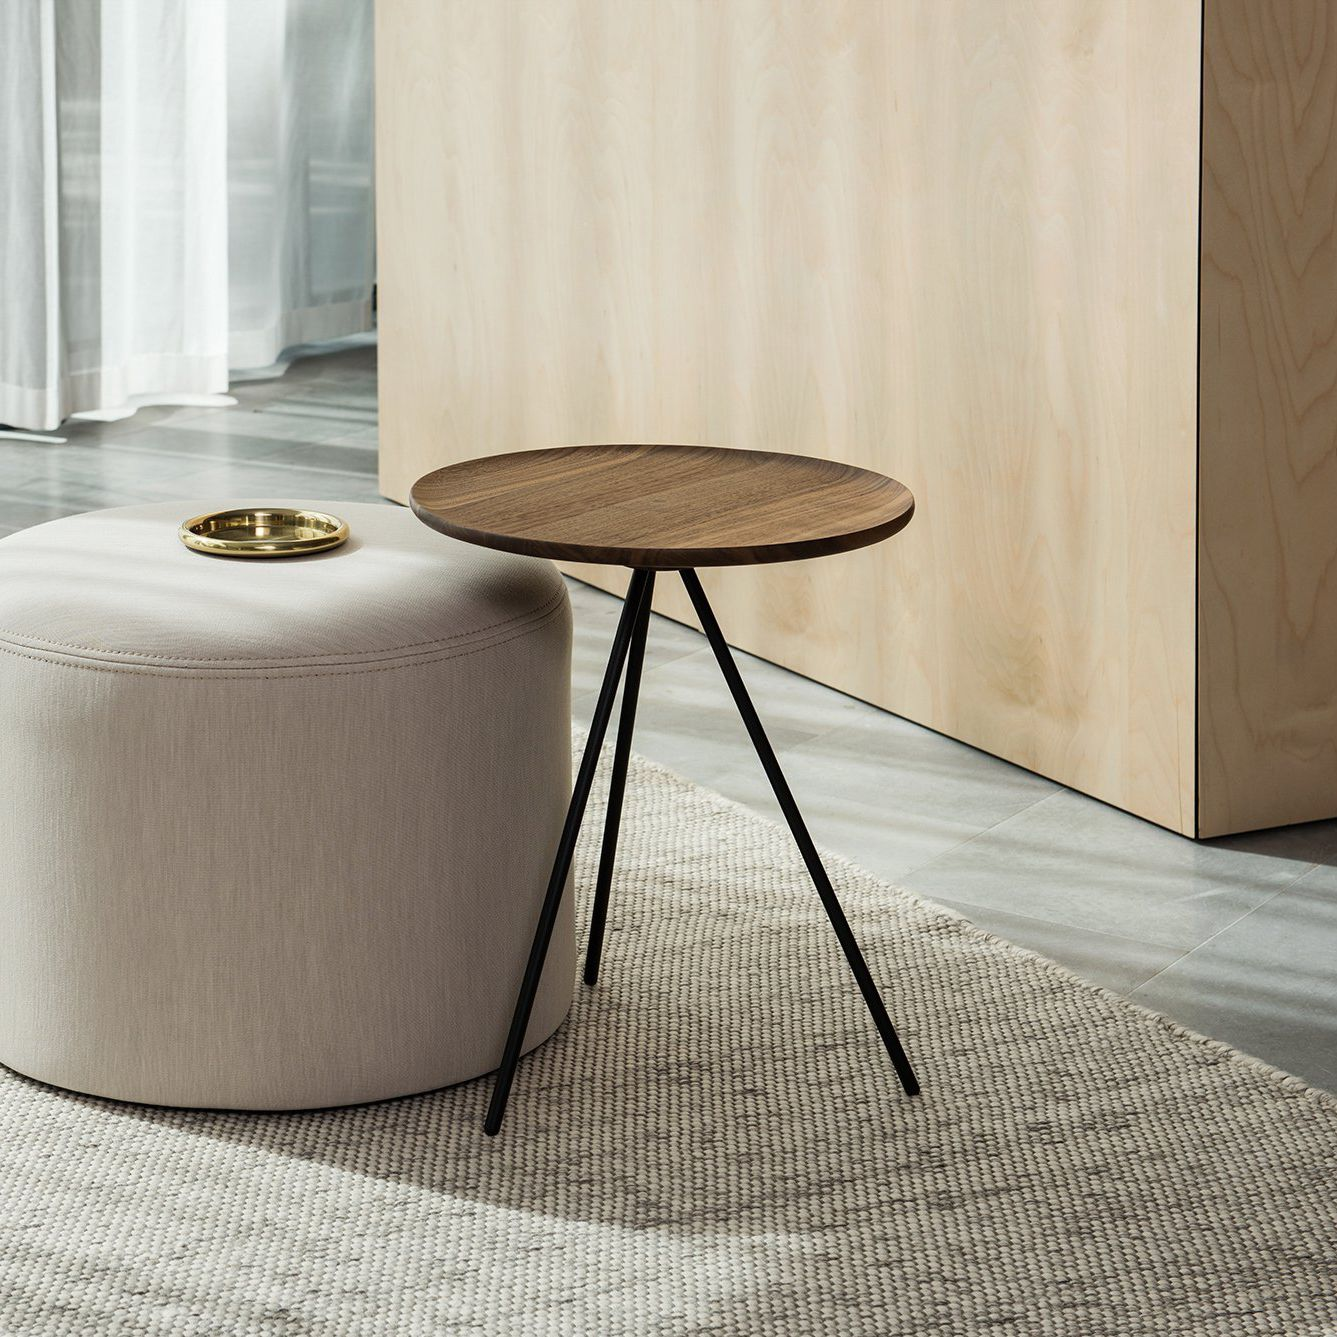 Attrayant Contemporary Side Table / Ash / Powder Coated Steel / Round   KEY By  GamFratesi